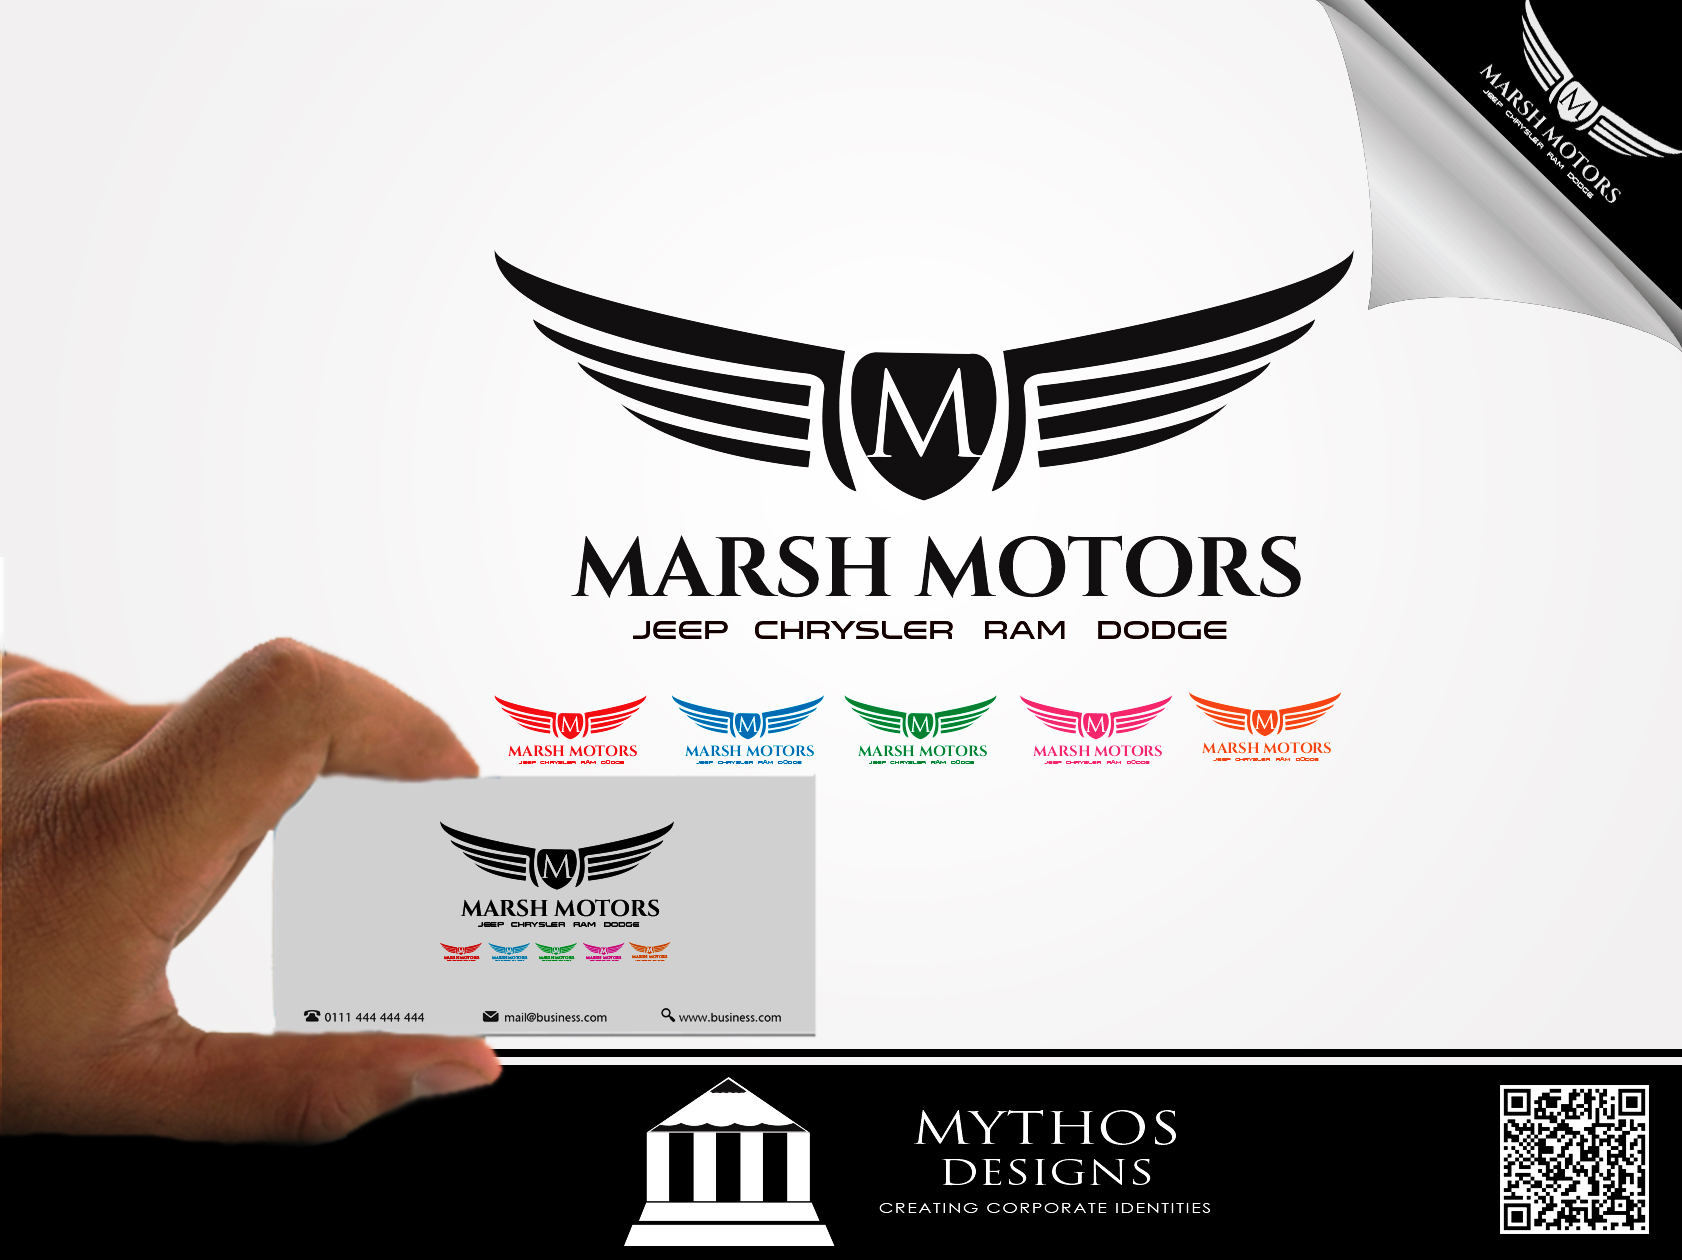 Logo Design by Mythos Designs - Entry No. 33 in the Logo Design Contest Marsh Motors Chrysler Logo Design.